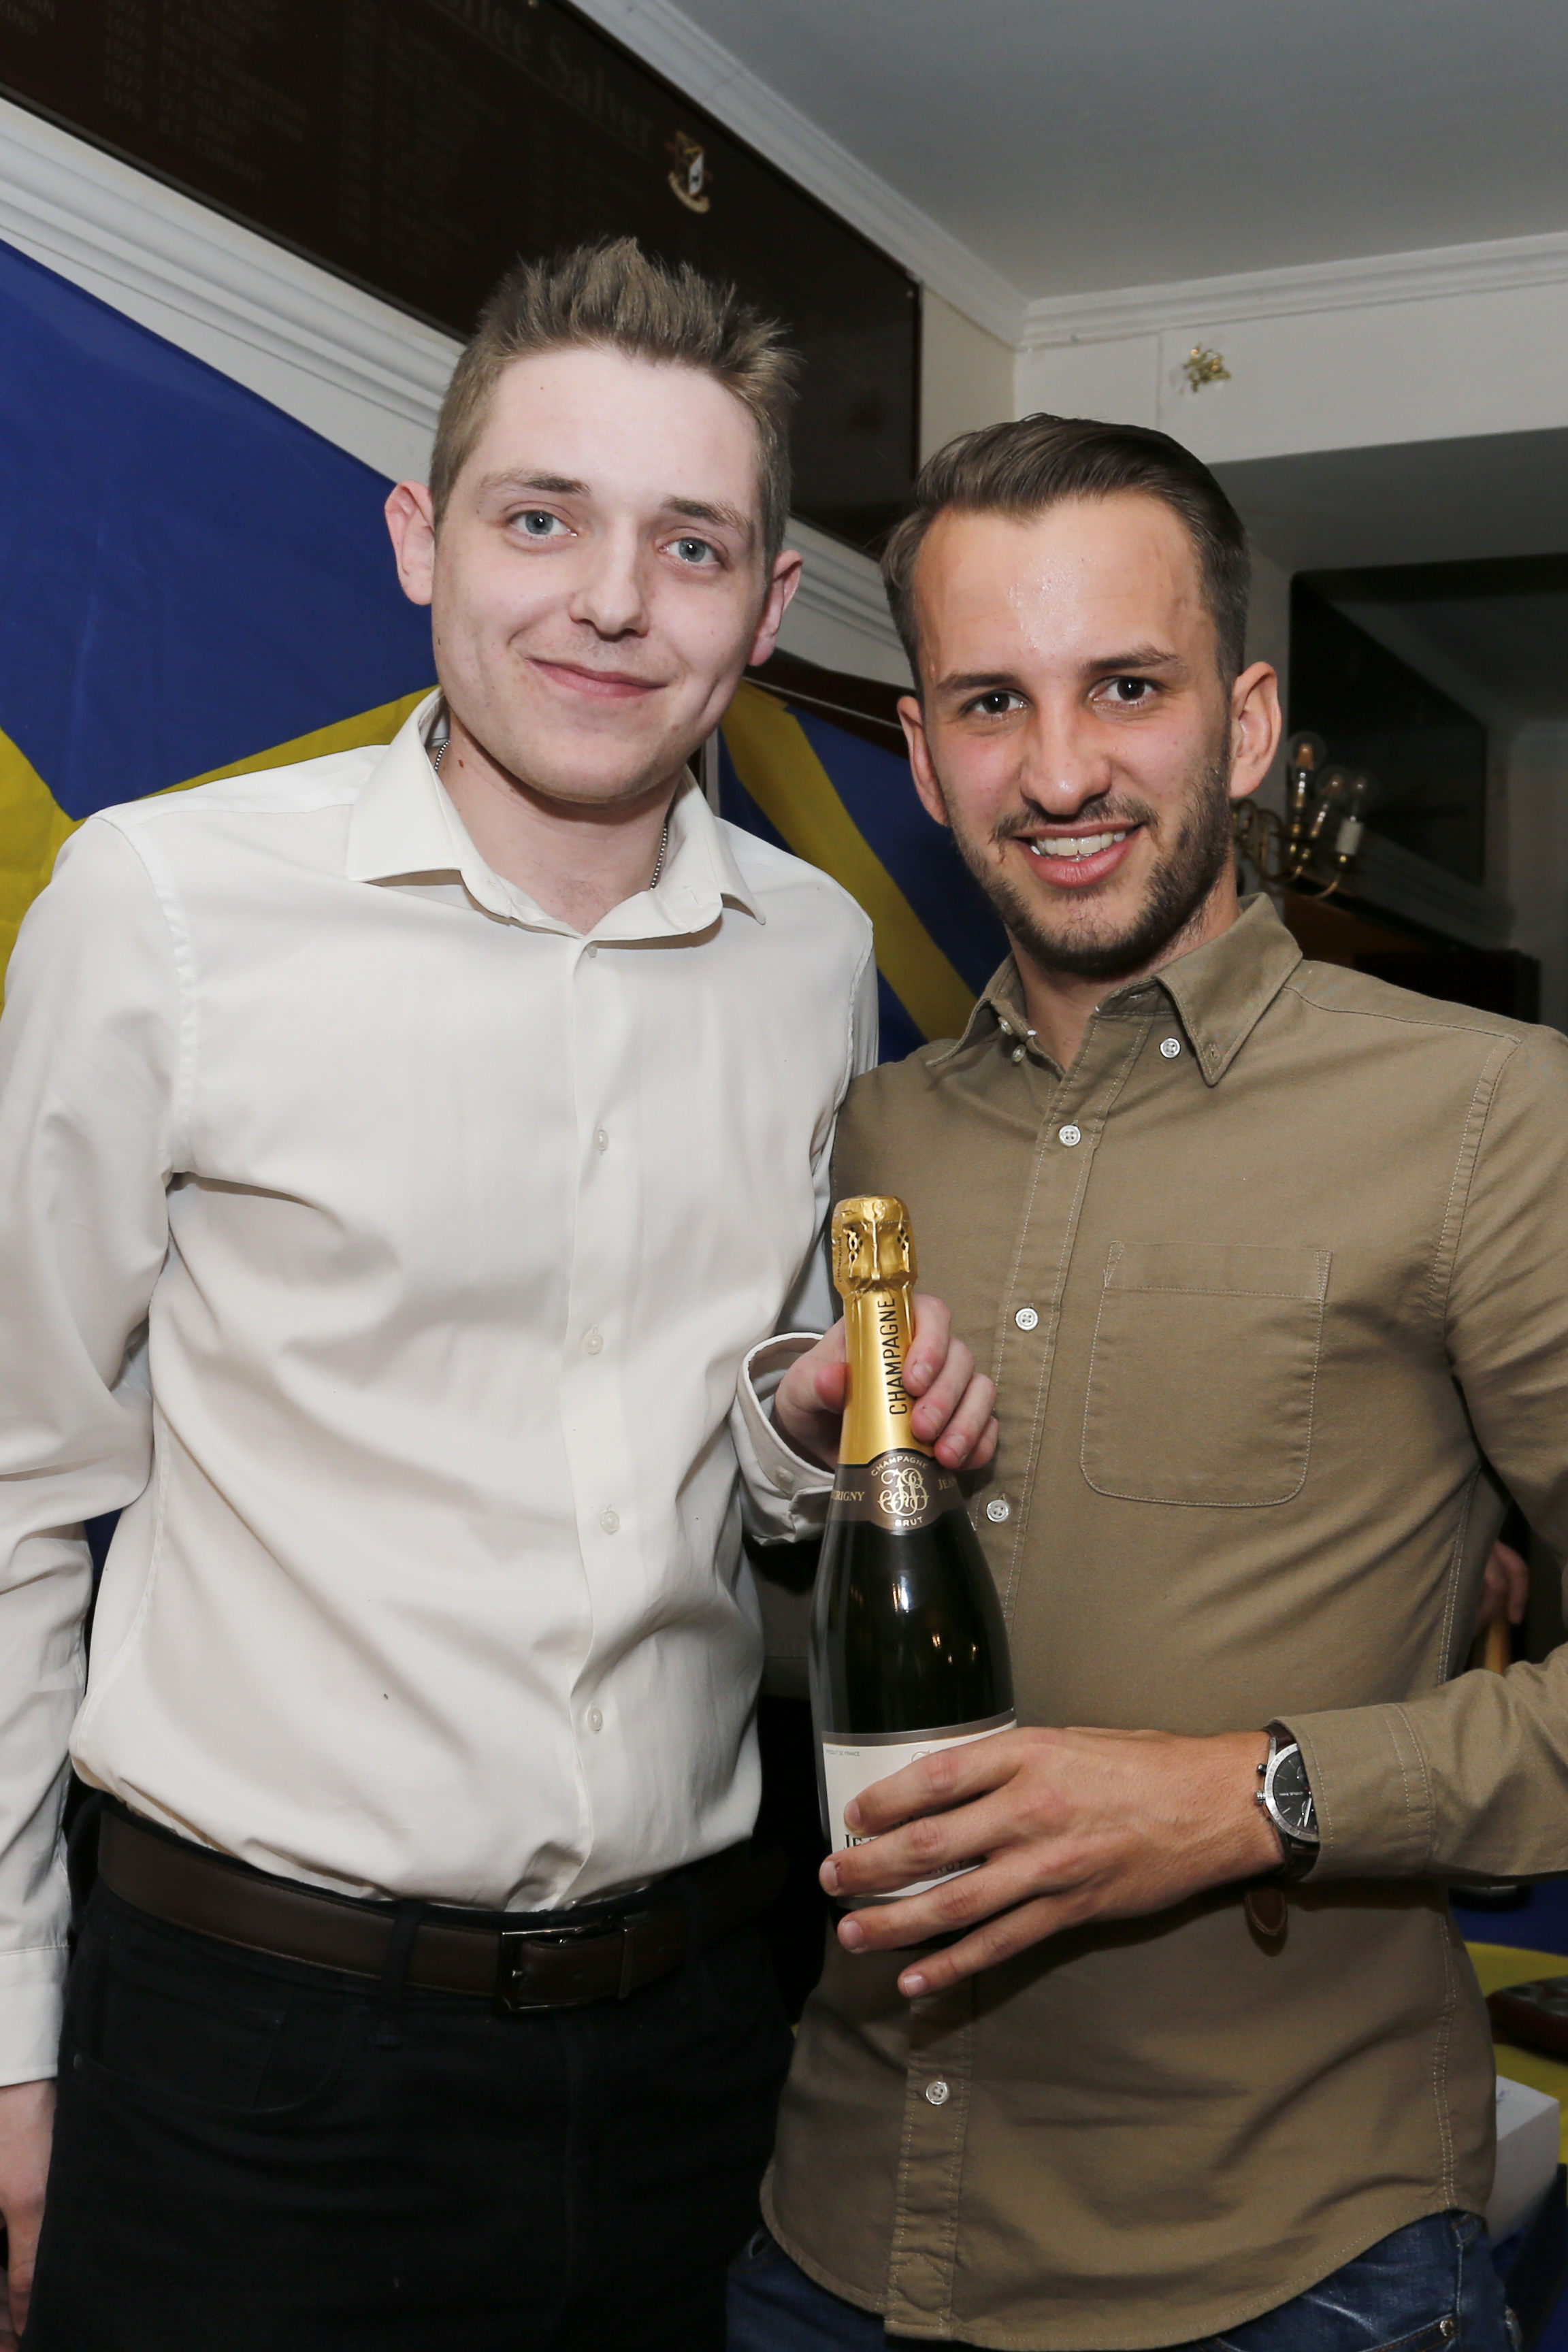 Sam Merson (right) was named Supporters' Player of the Season. Picture: Leigh Page